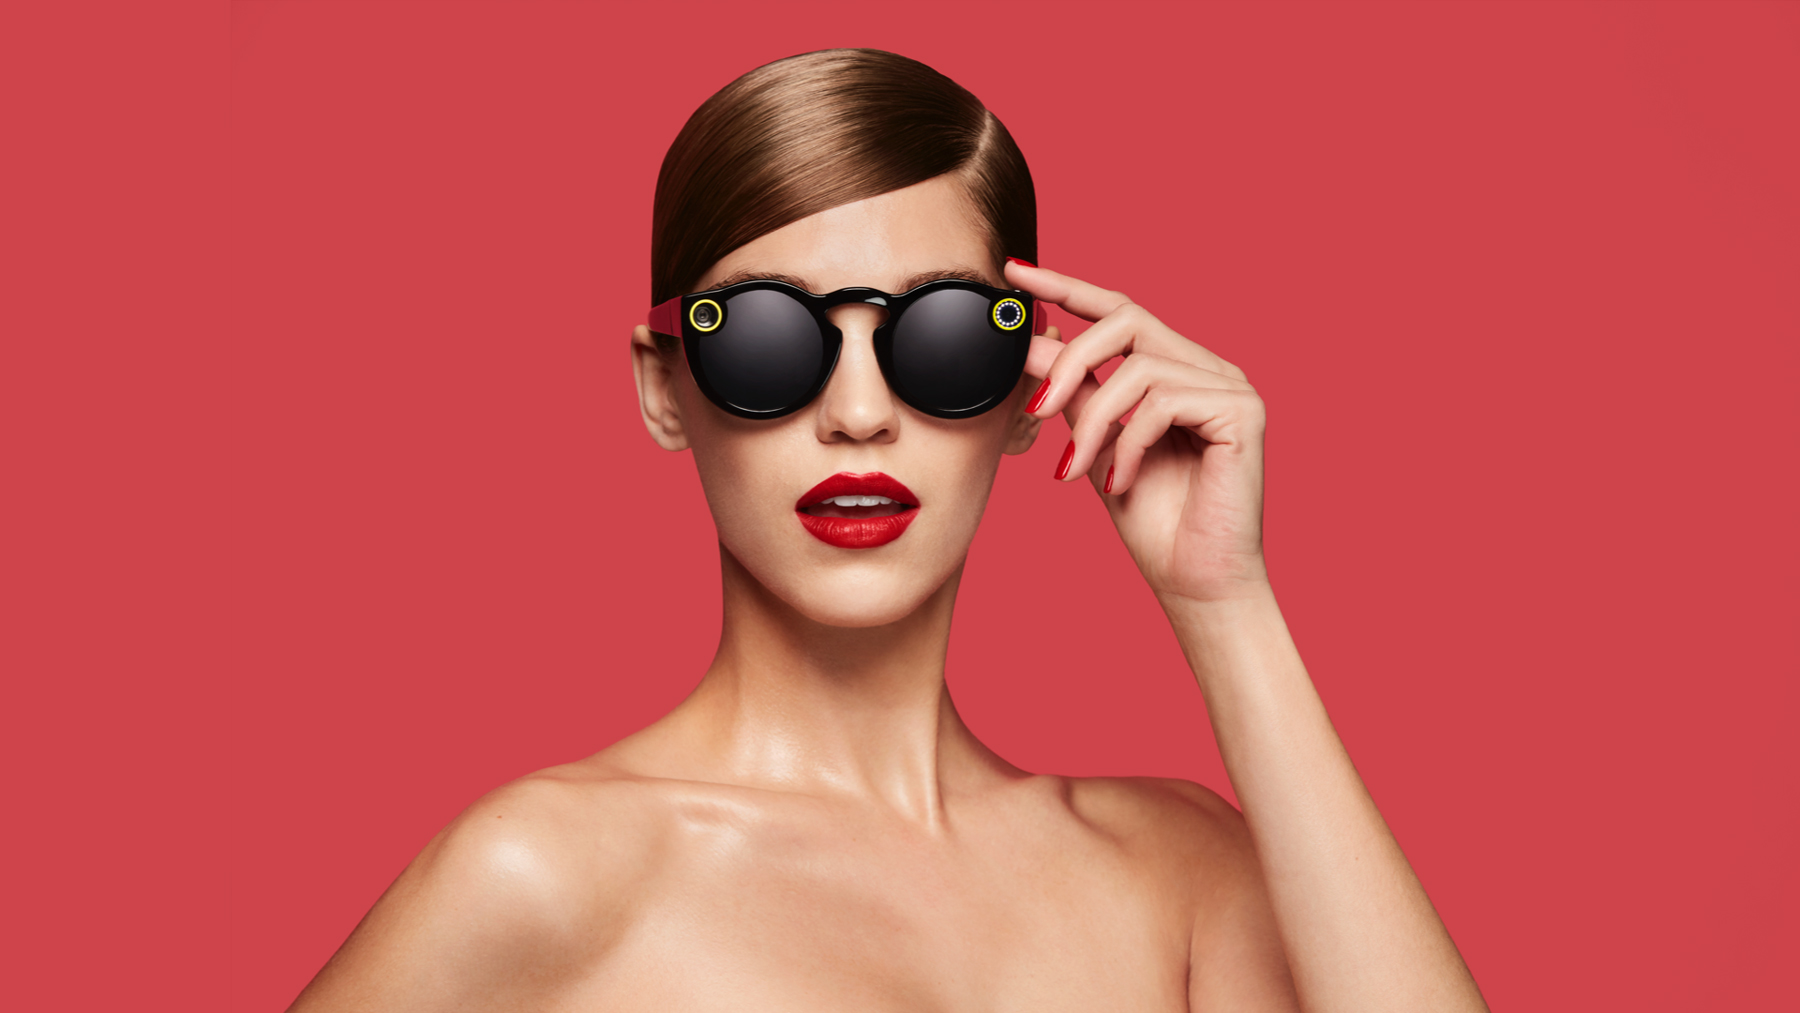 Snapchat Spectacles Are Now Available—But What Exactly Are They?